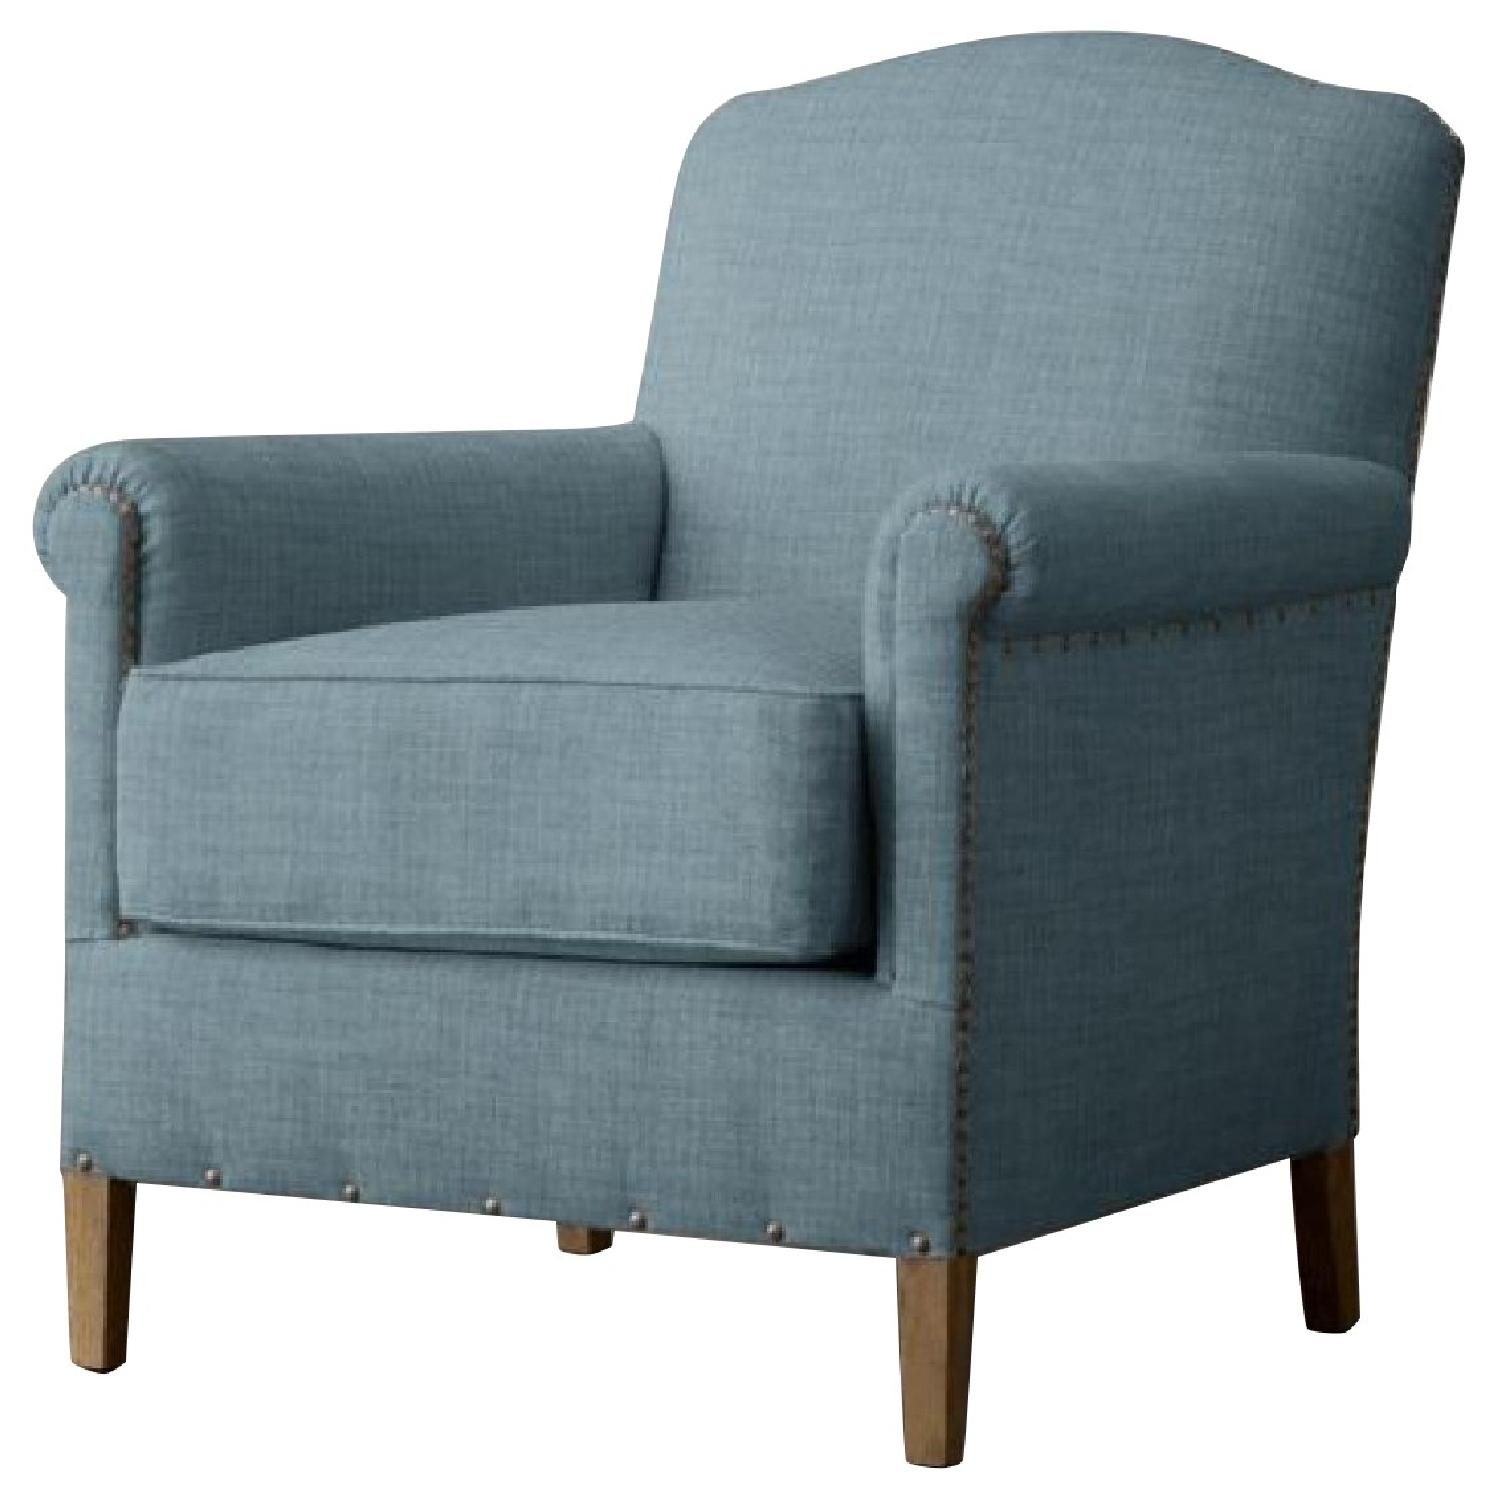 Restoration Hardware 1920's French Camelback Club Chair